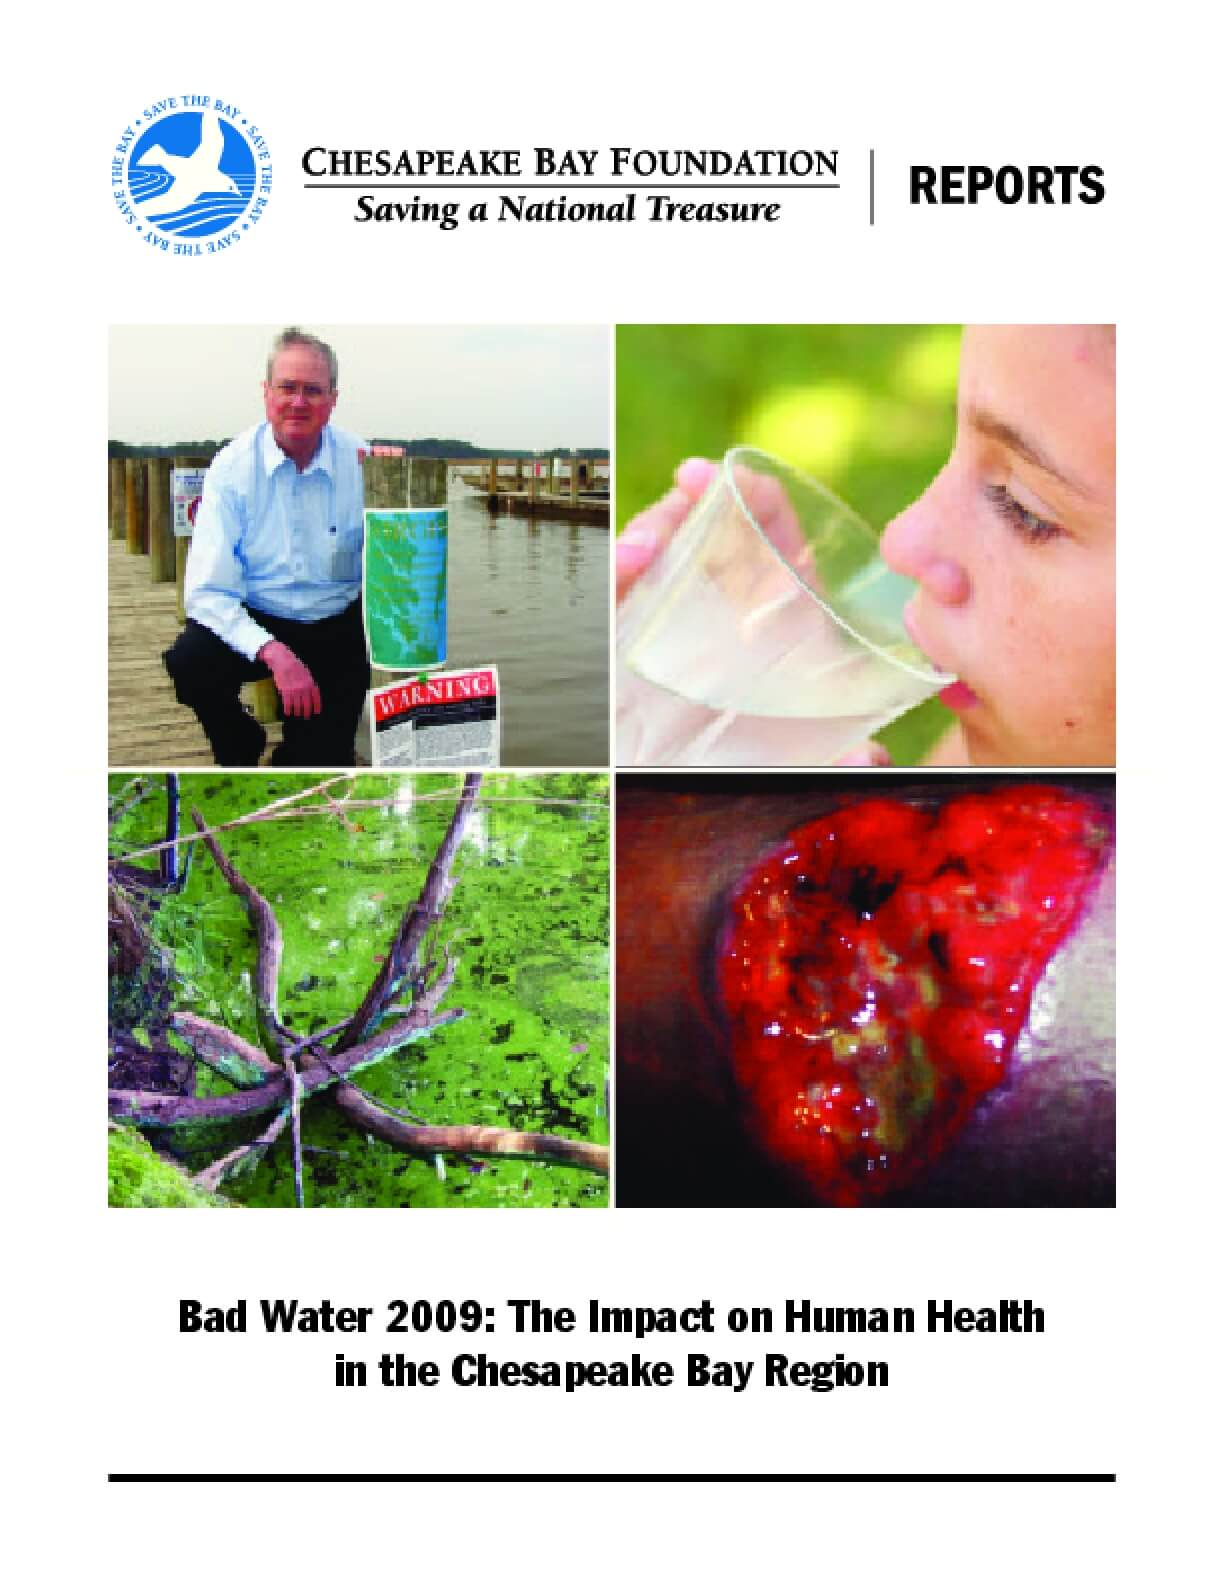 Bad Water 2009: The Impact on Human Health in the Chesapeake Bay Region